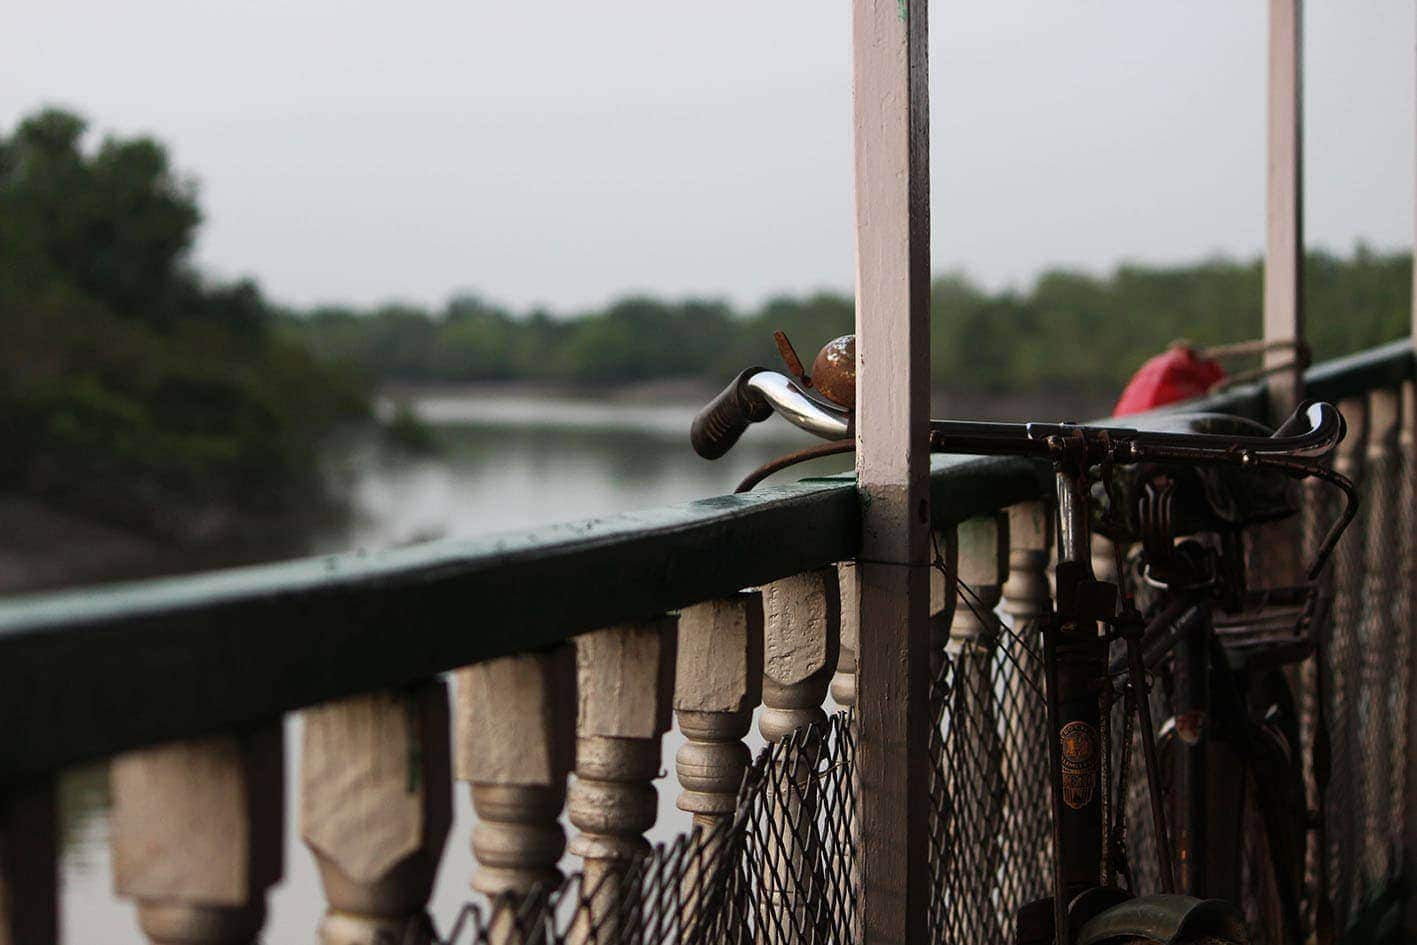 Image of a bike supports on the railing of a bridge